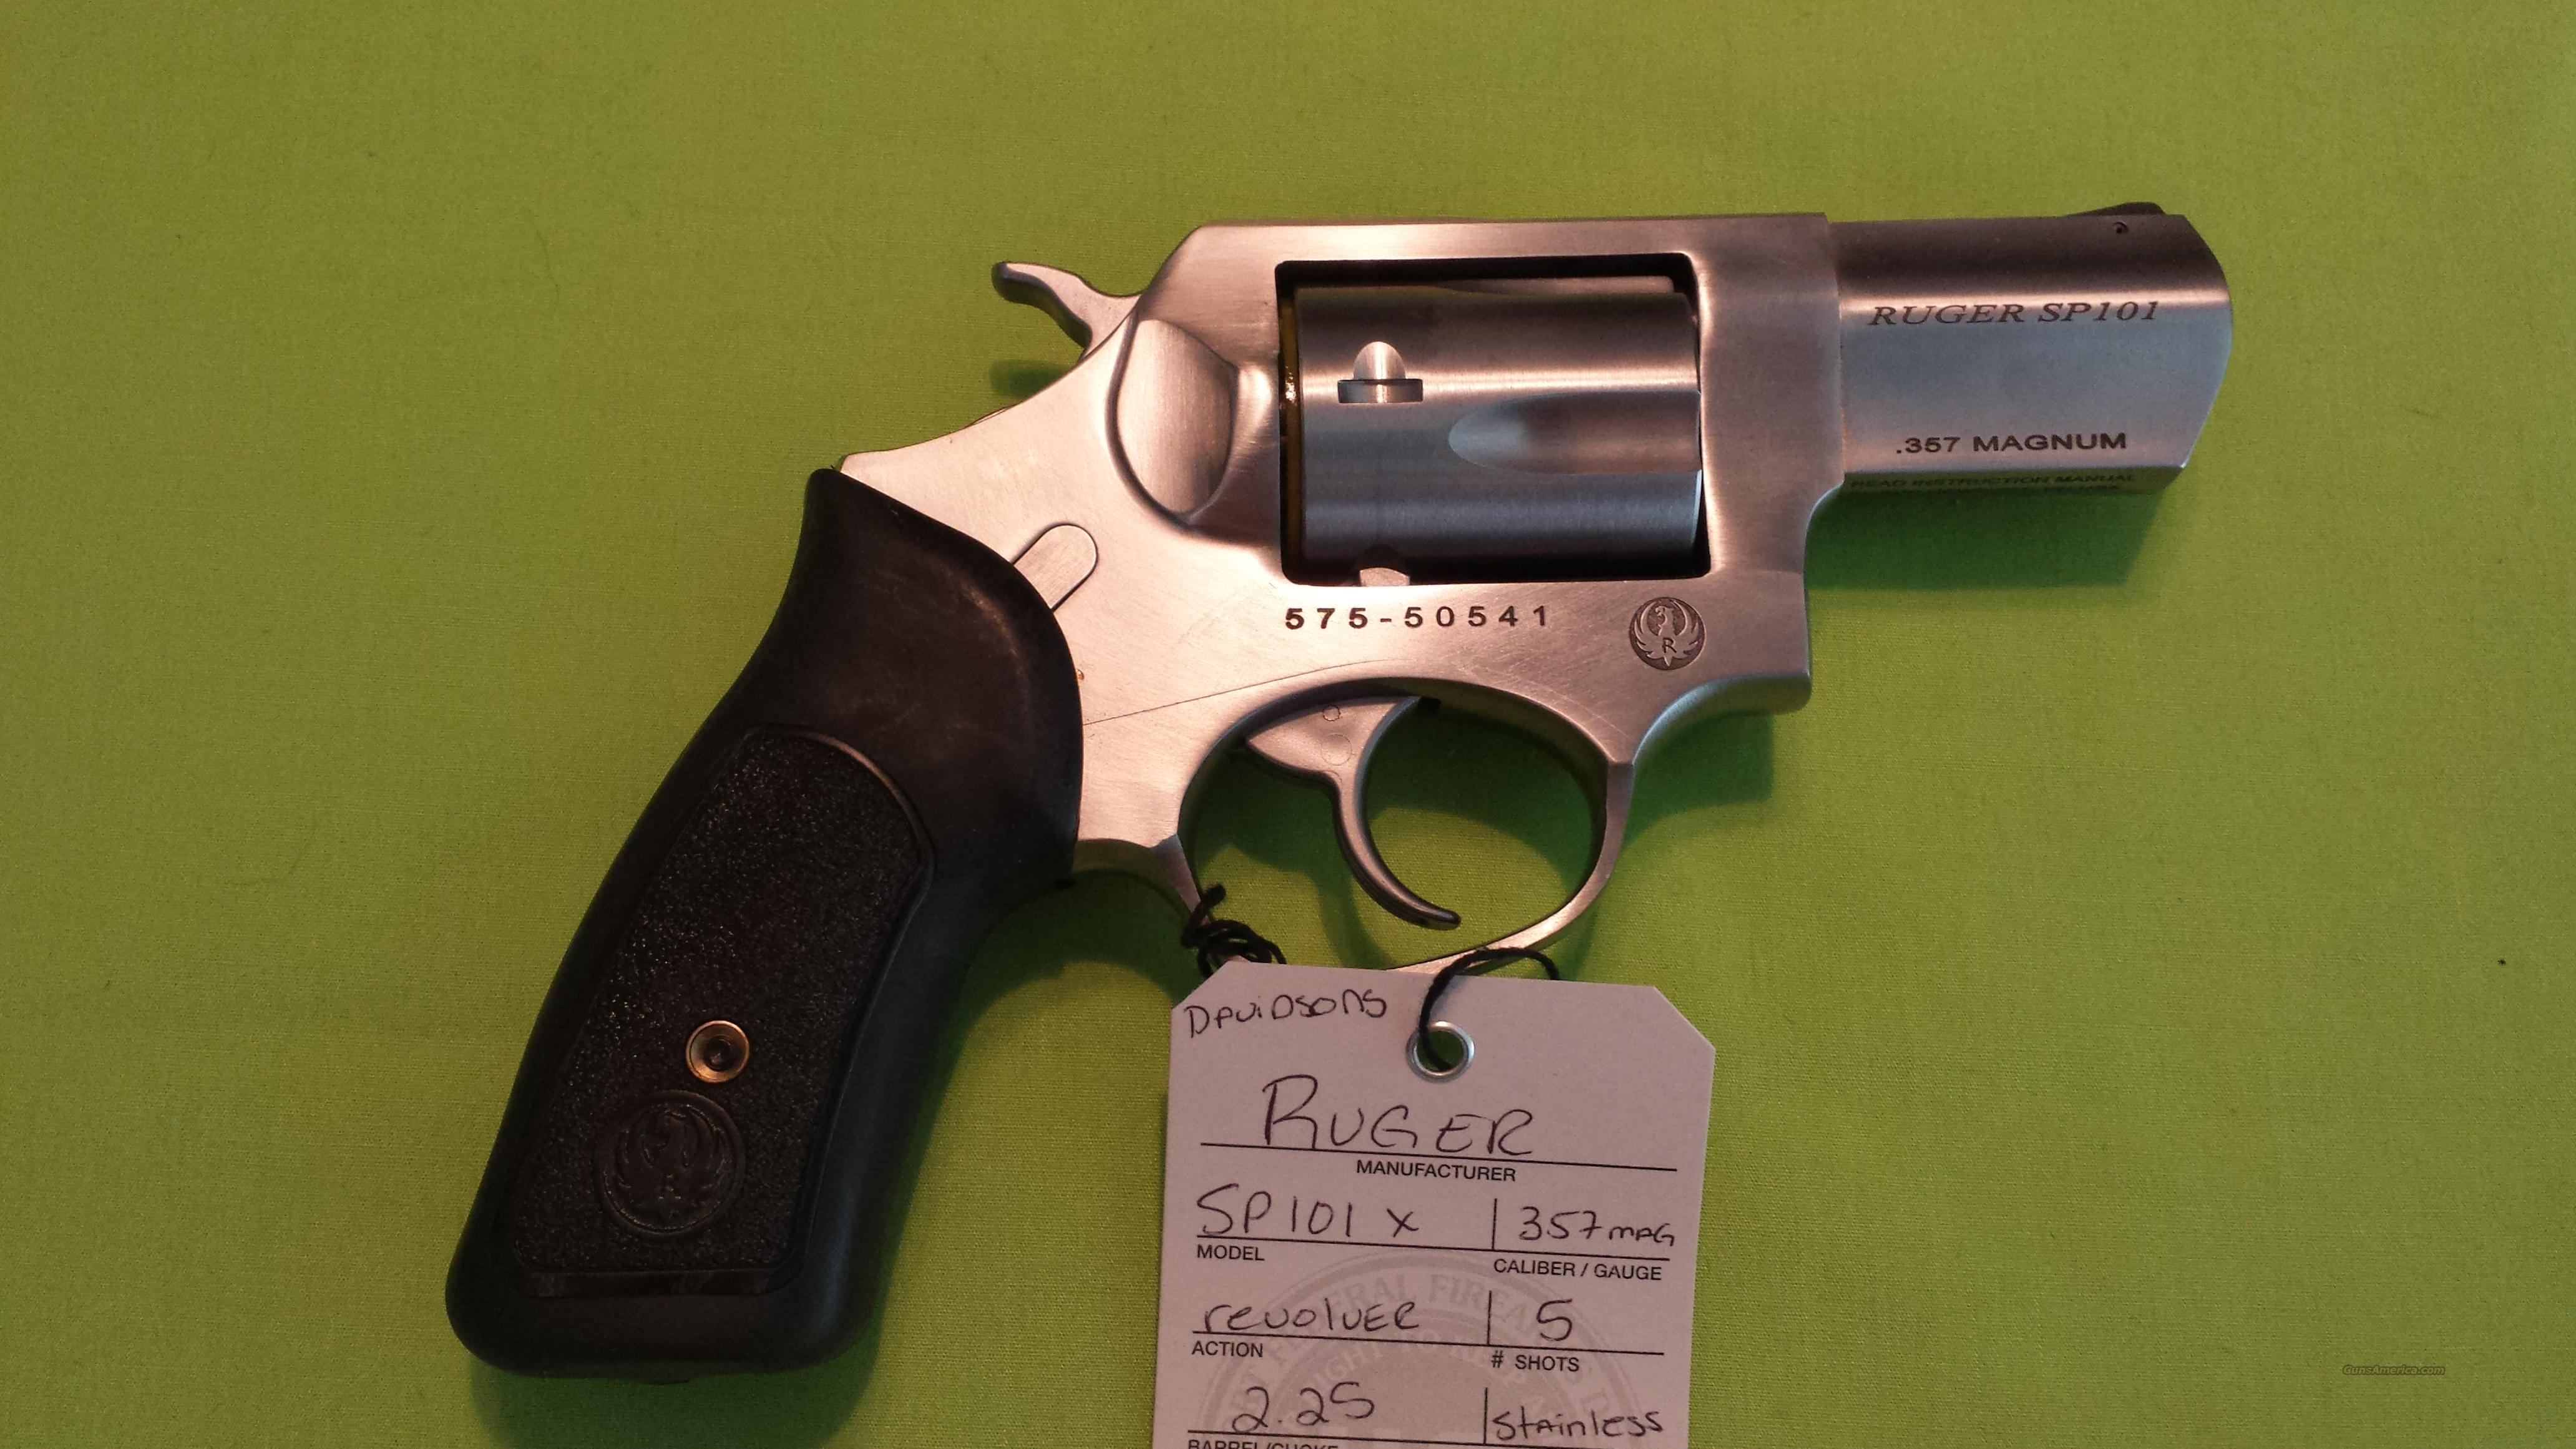 RUGER SP101X SP101 X 357 357MAG REV 2.25 STAINLESS  Guns > Pistols > Ruger Double Action Revolver > SP101 Type